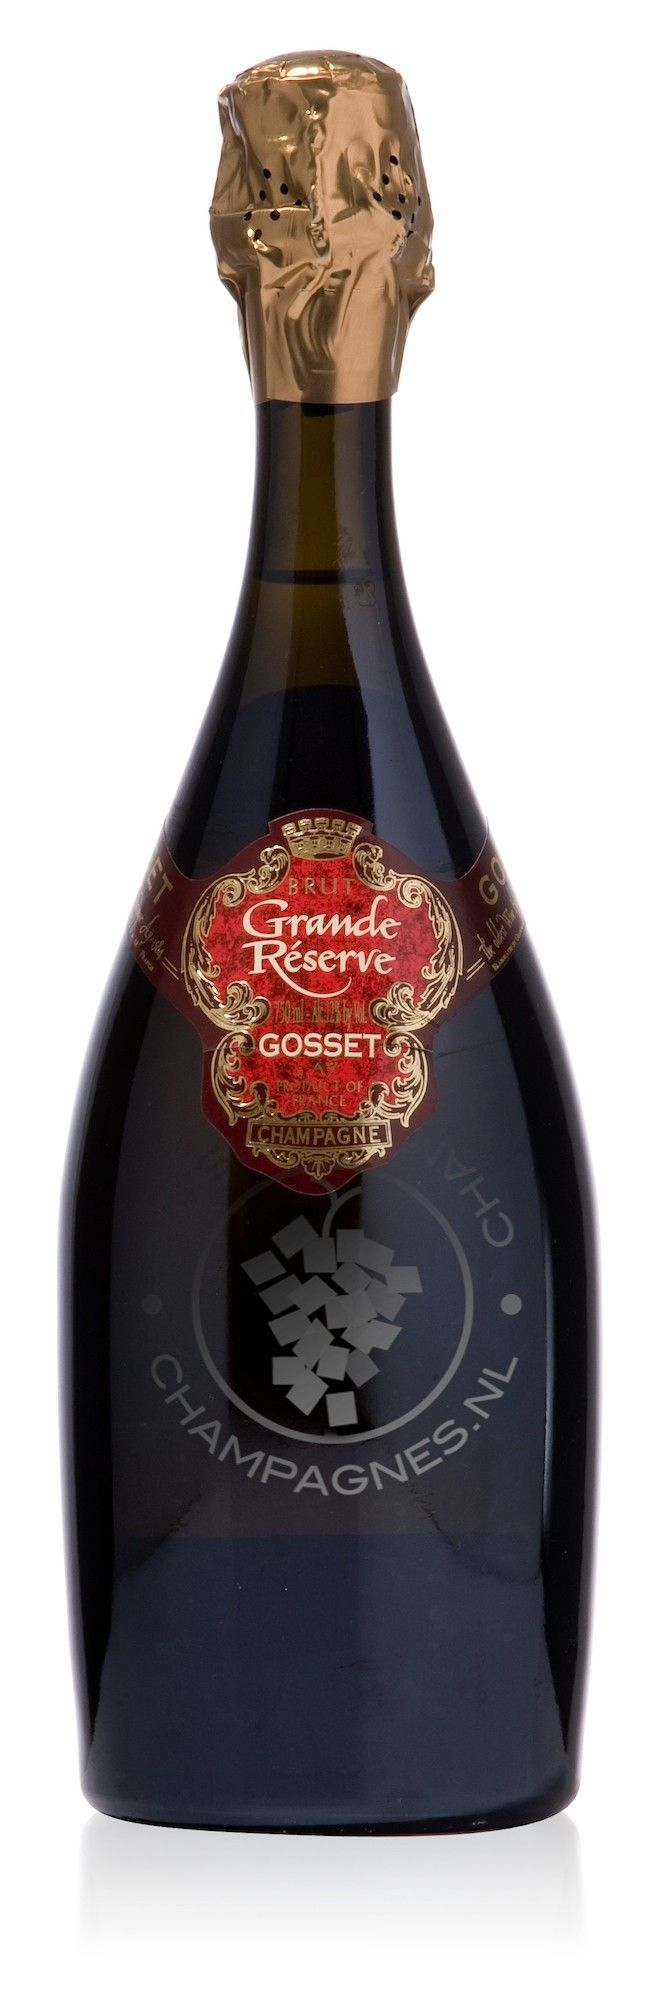 For the happy couple to enjoy in private! This is our gift to you--Gosset Grande Reserve Champagne Bestellen PD